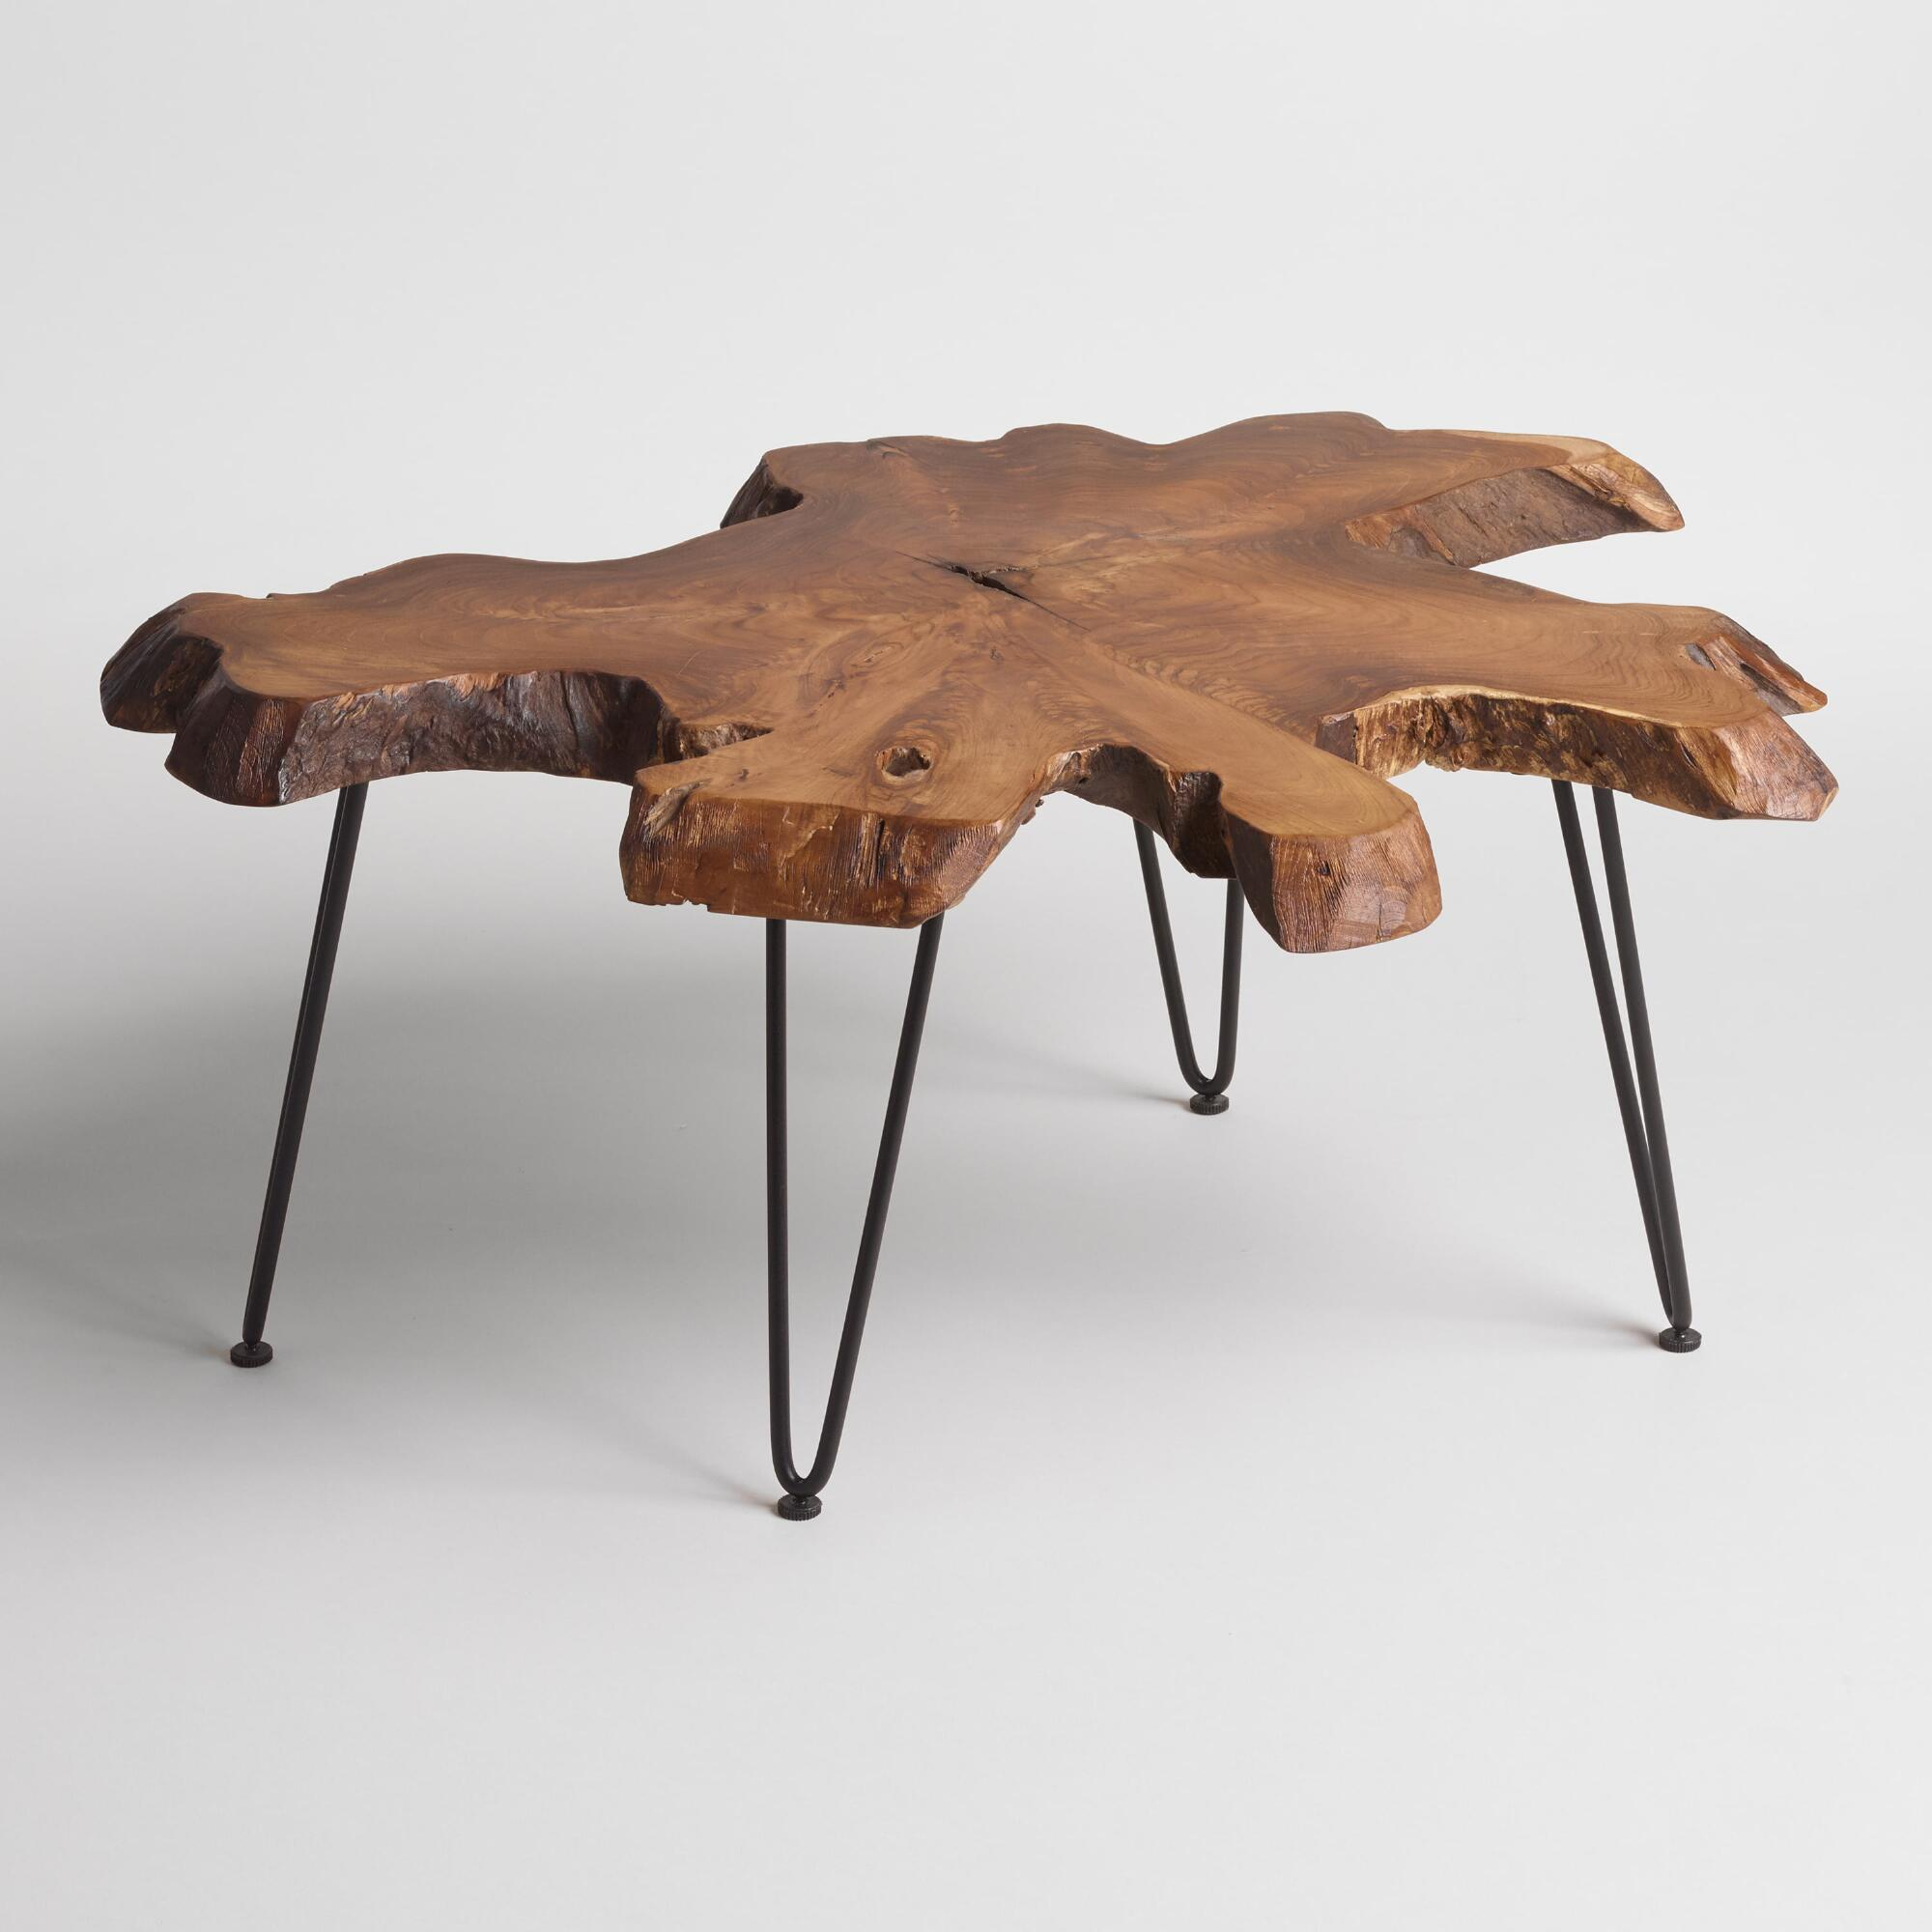 Our Coffee Table Is Crafted In Indonesia From A Real Slice